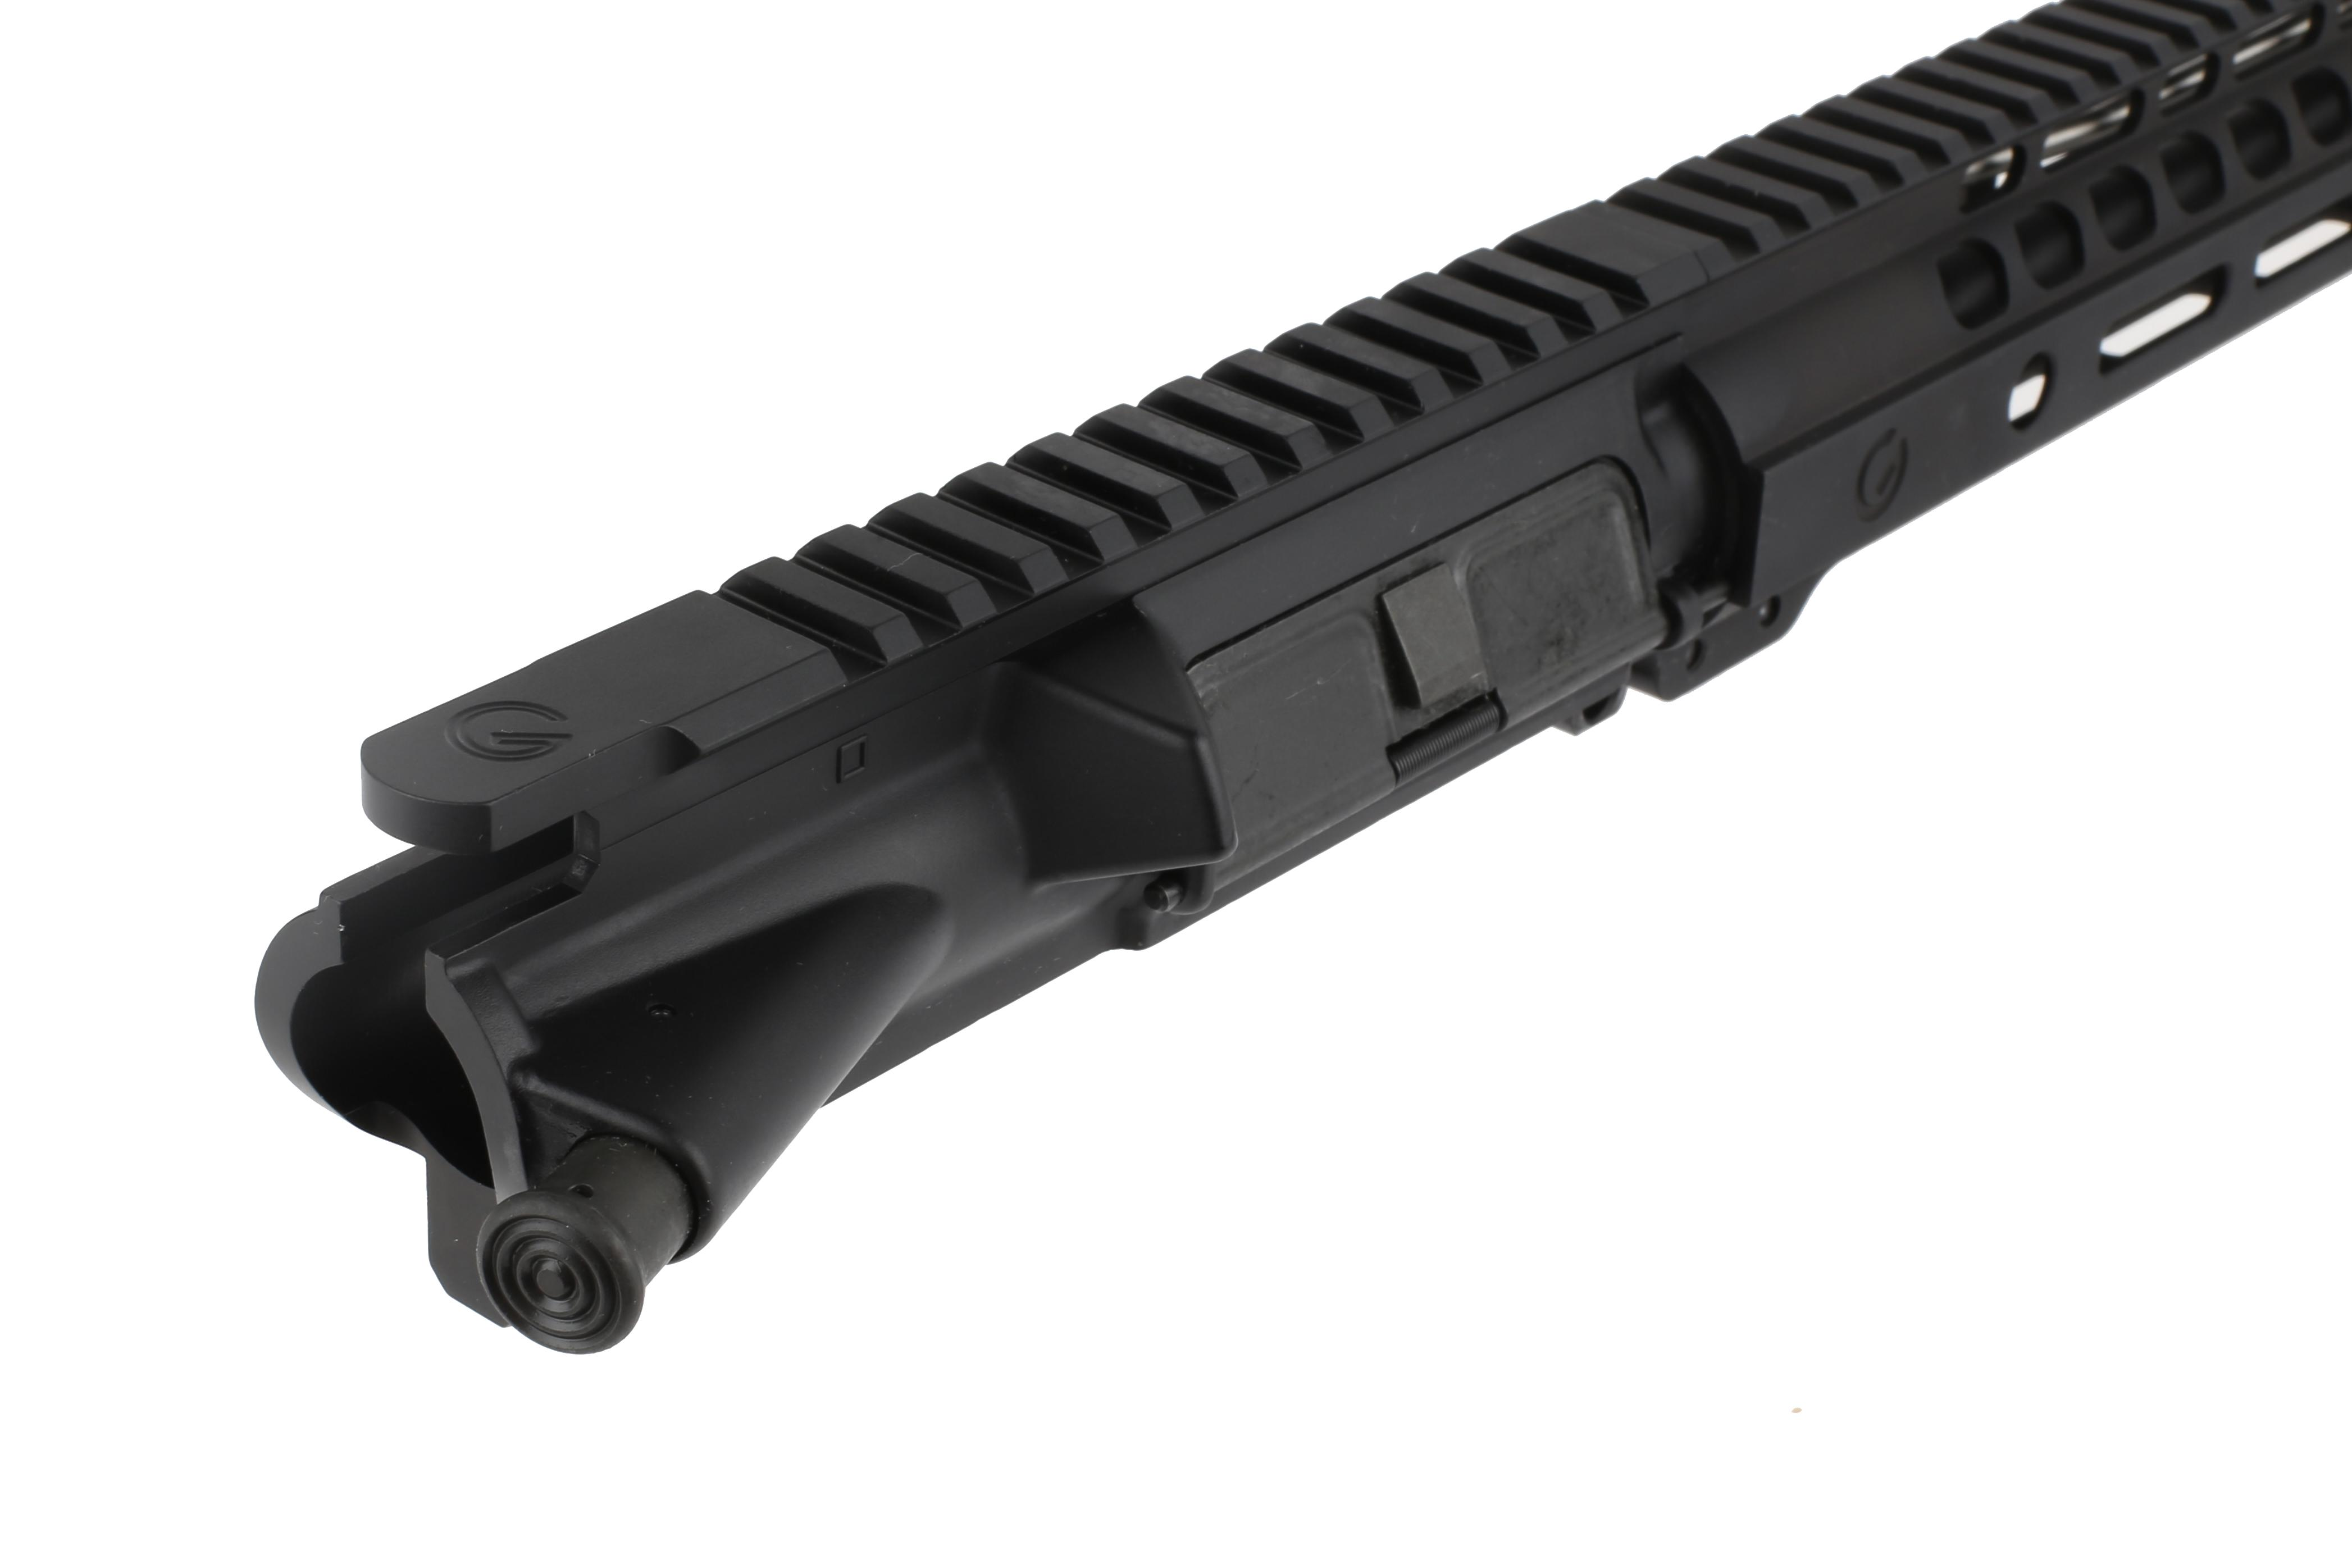 The Ghost Firearms 5.56 NATO upper does not include bcg or charging handle